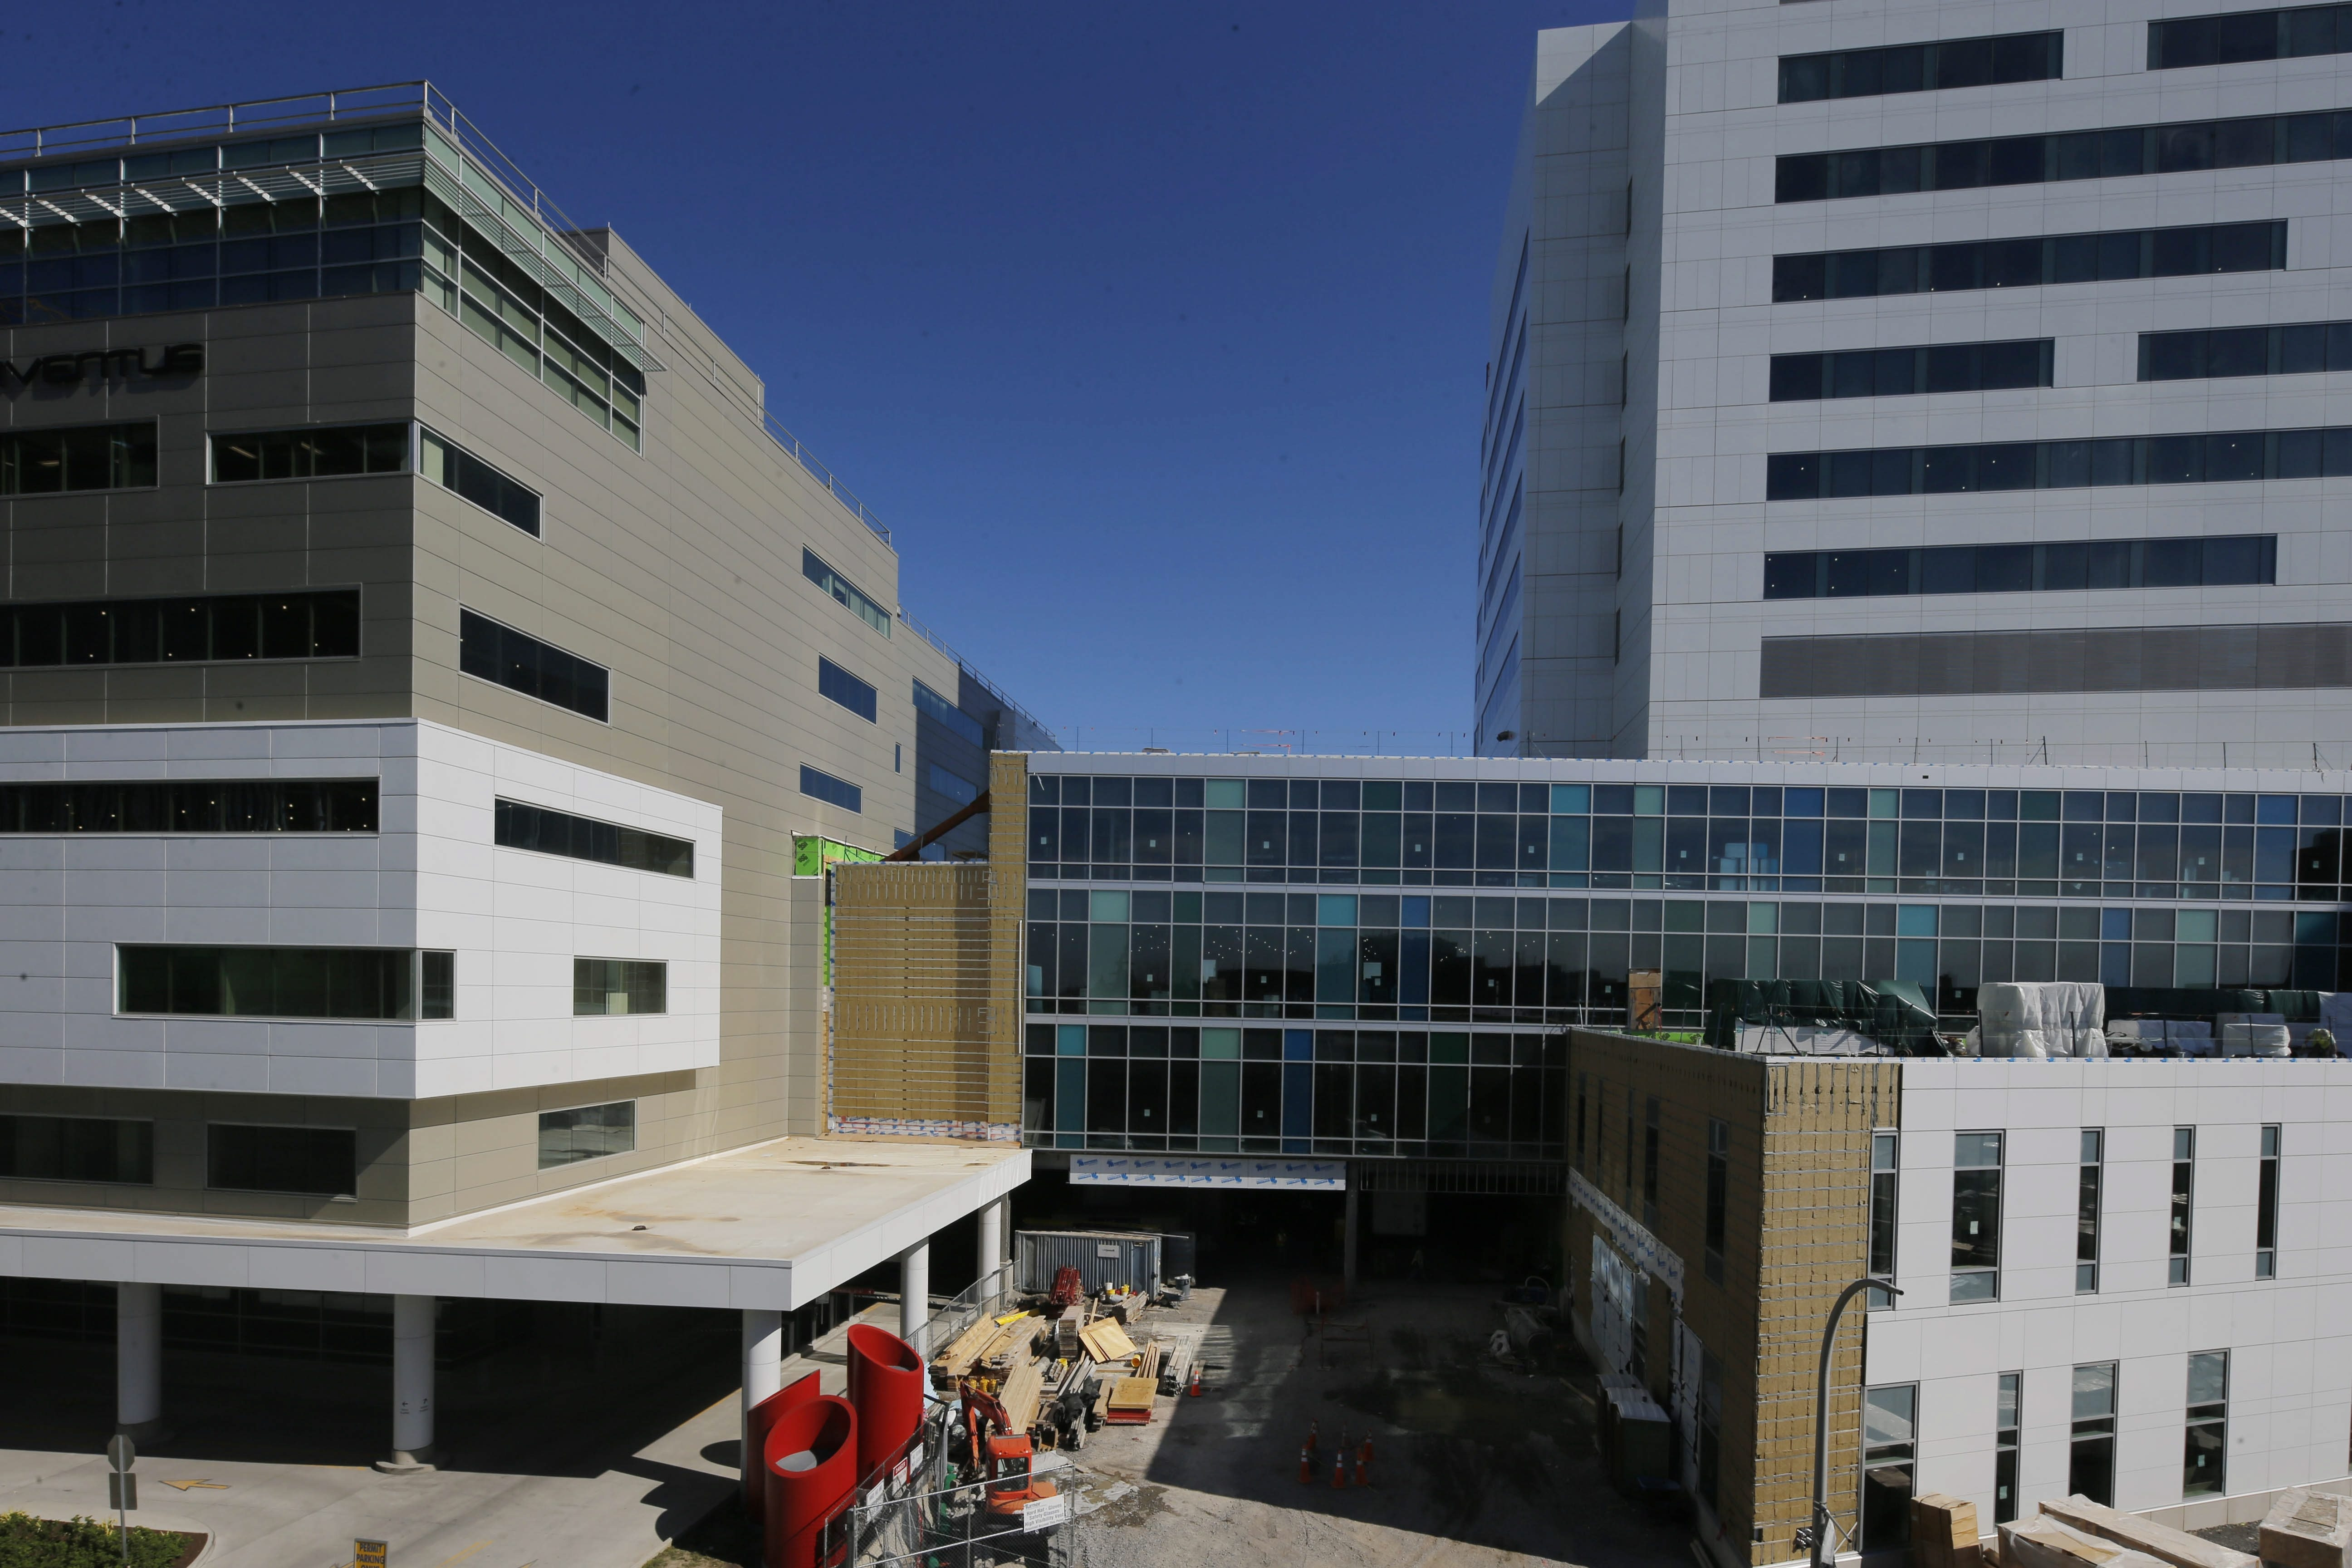 The new Children's Hospital on the right is connected with the Conventus building on the left.  Both are on the  Buffalo Niagara Medical Campus.  (Derek Gee/Buffalo News)